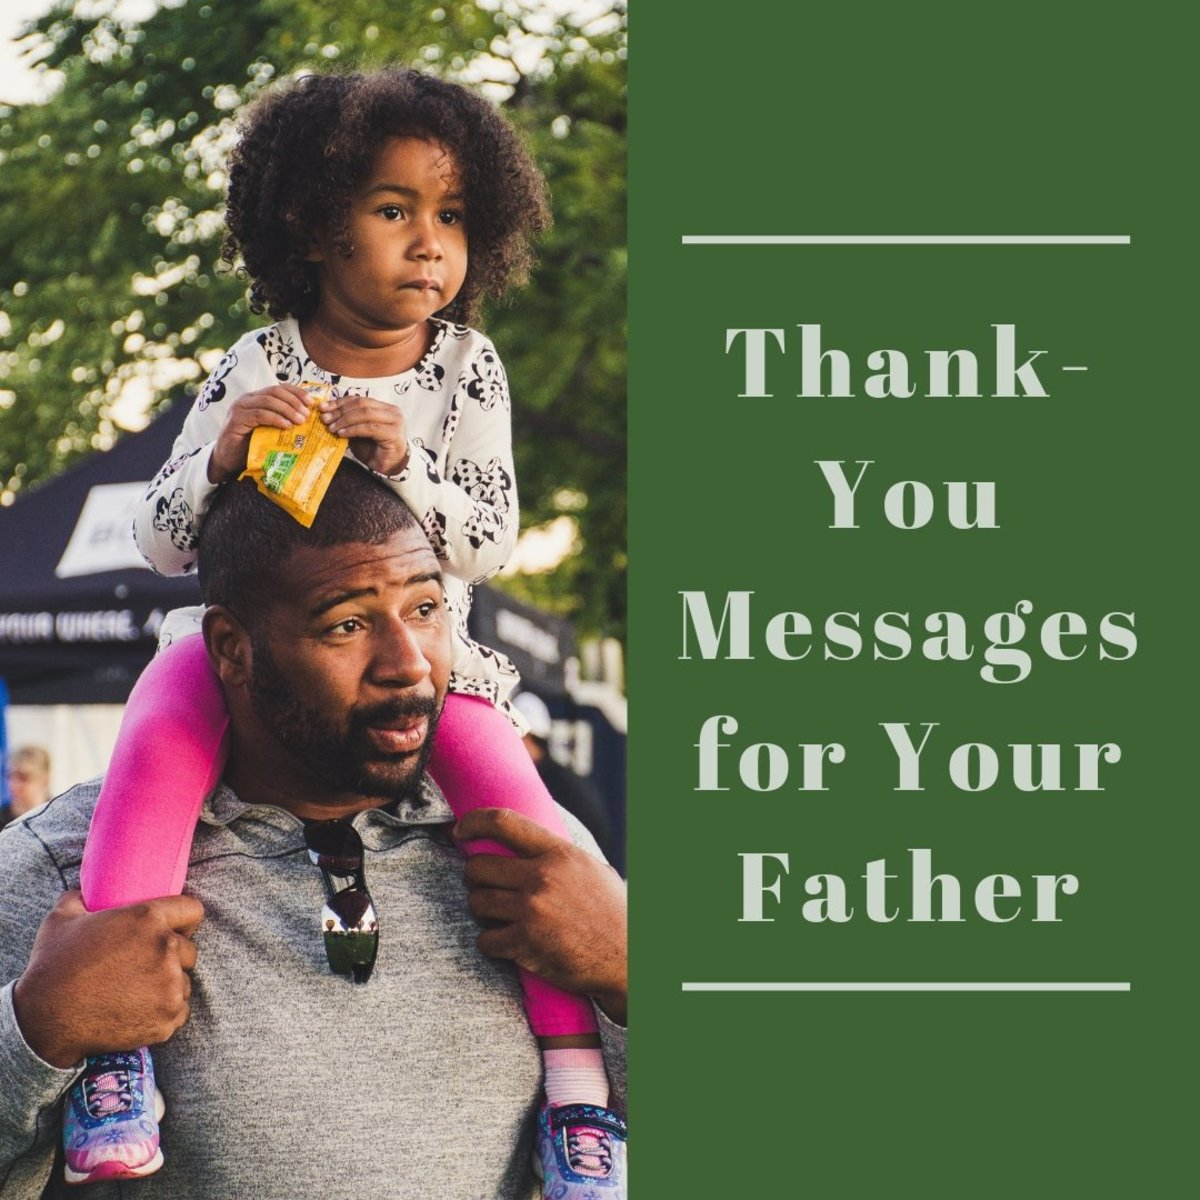 Poems, Messages, and Quotes to Write in a Thank-You Card for Your Dad